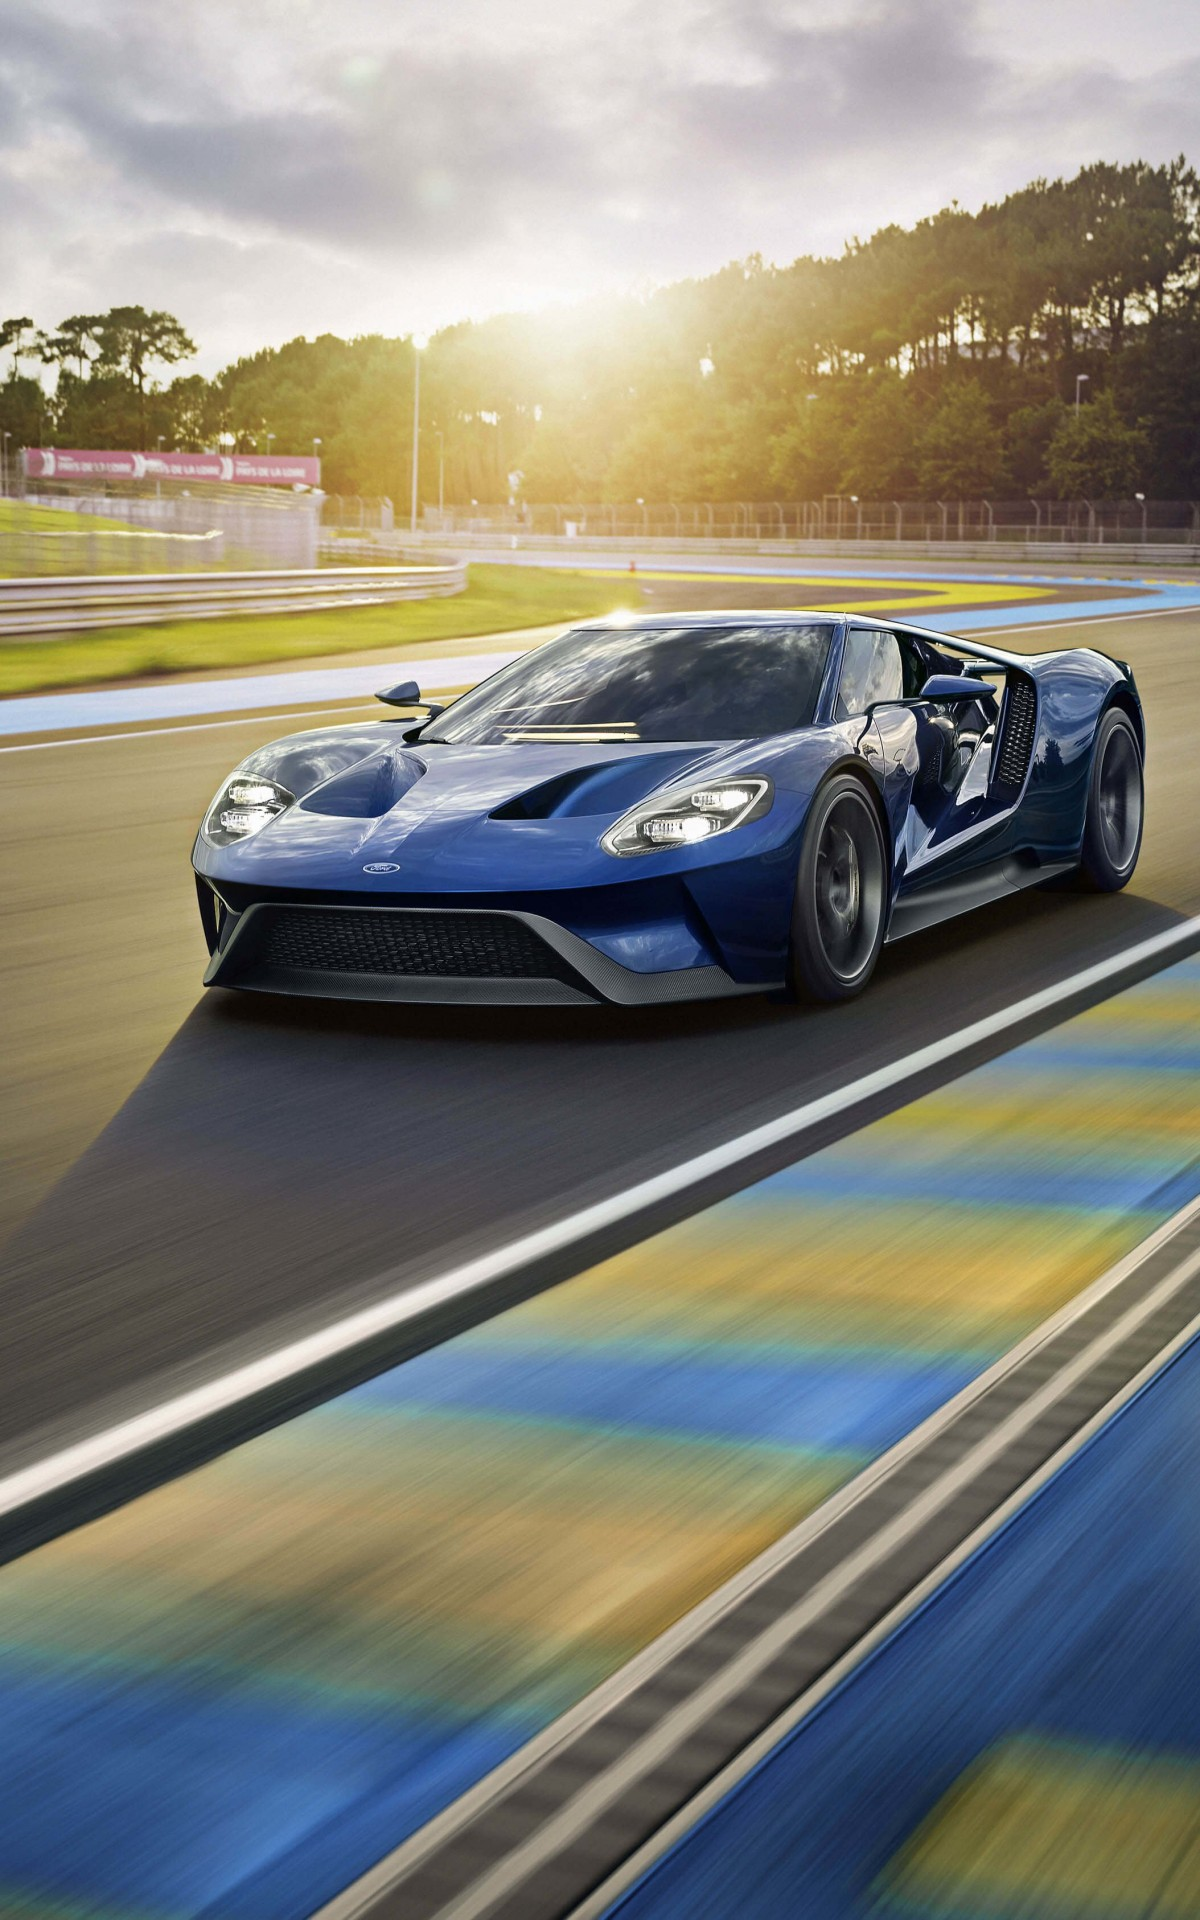 Ford GT Supercar Wallpaper for Amazon Kindle Fire HDX